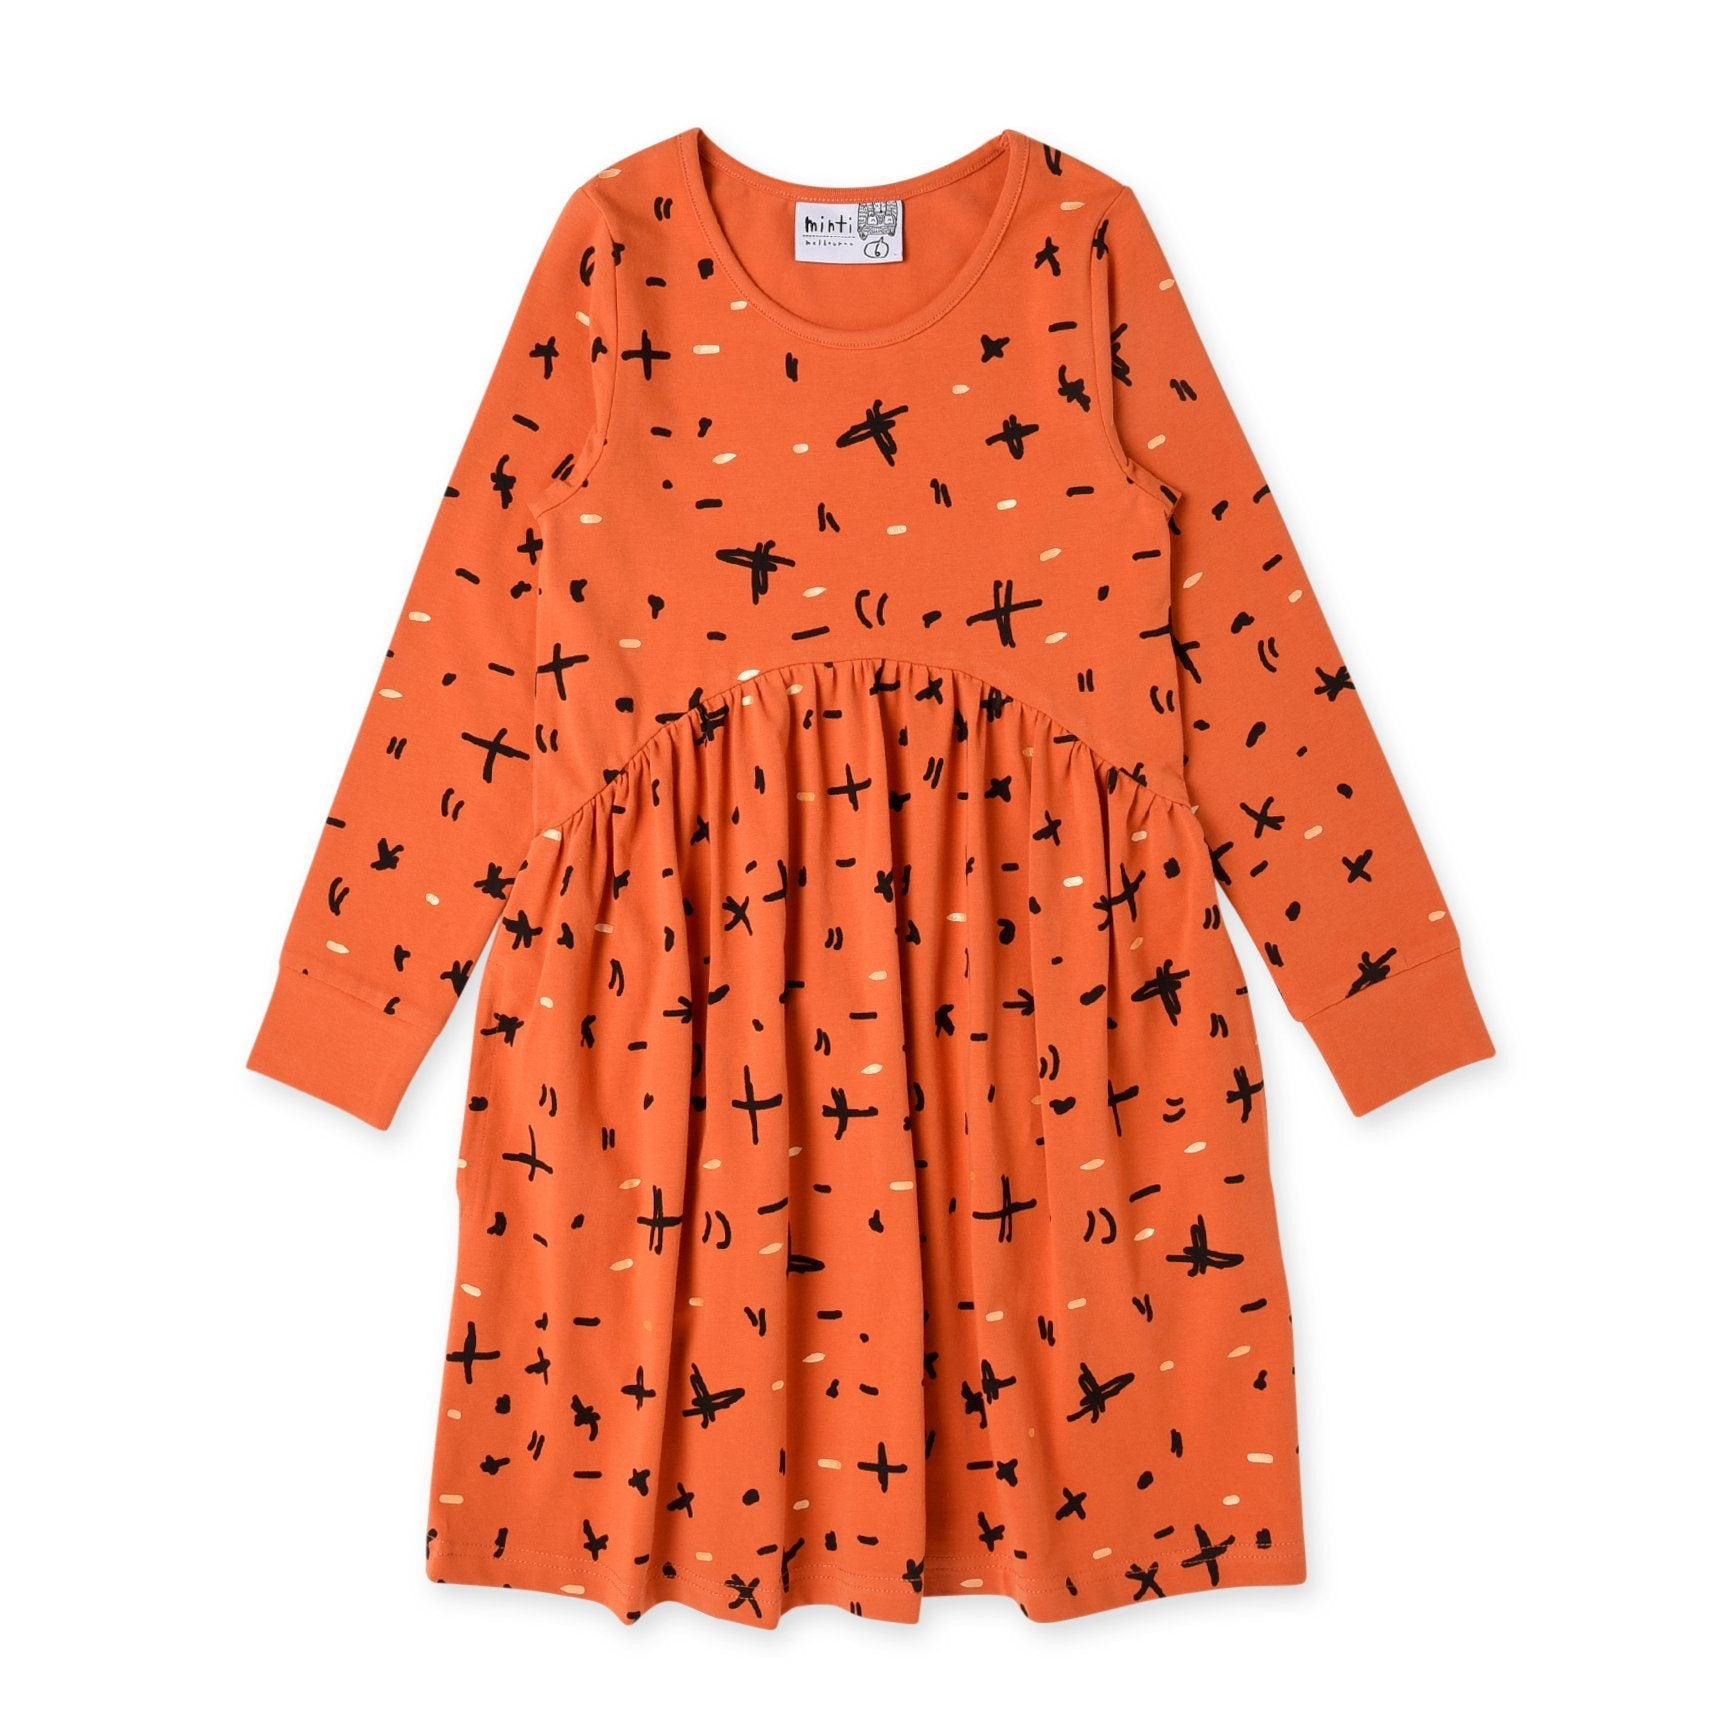 Crosses & Scribbles Dress